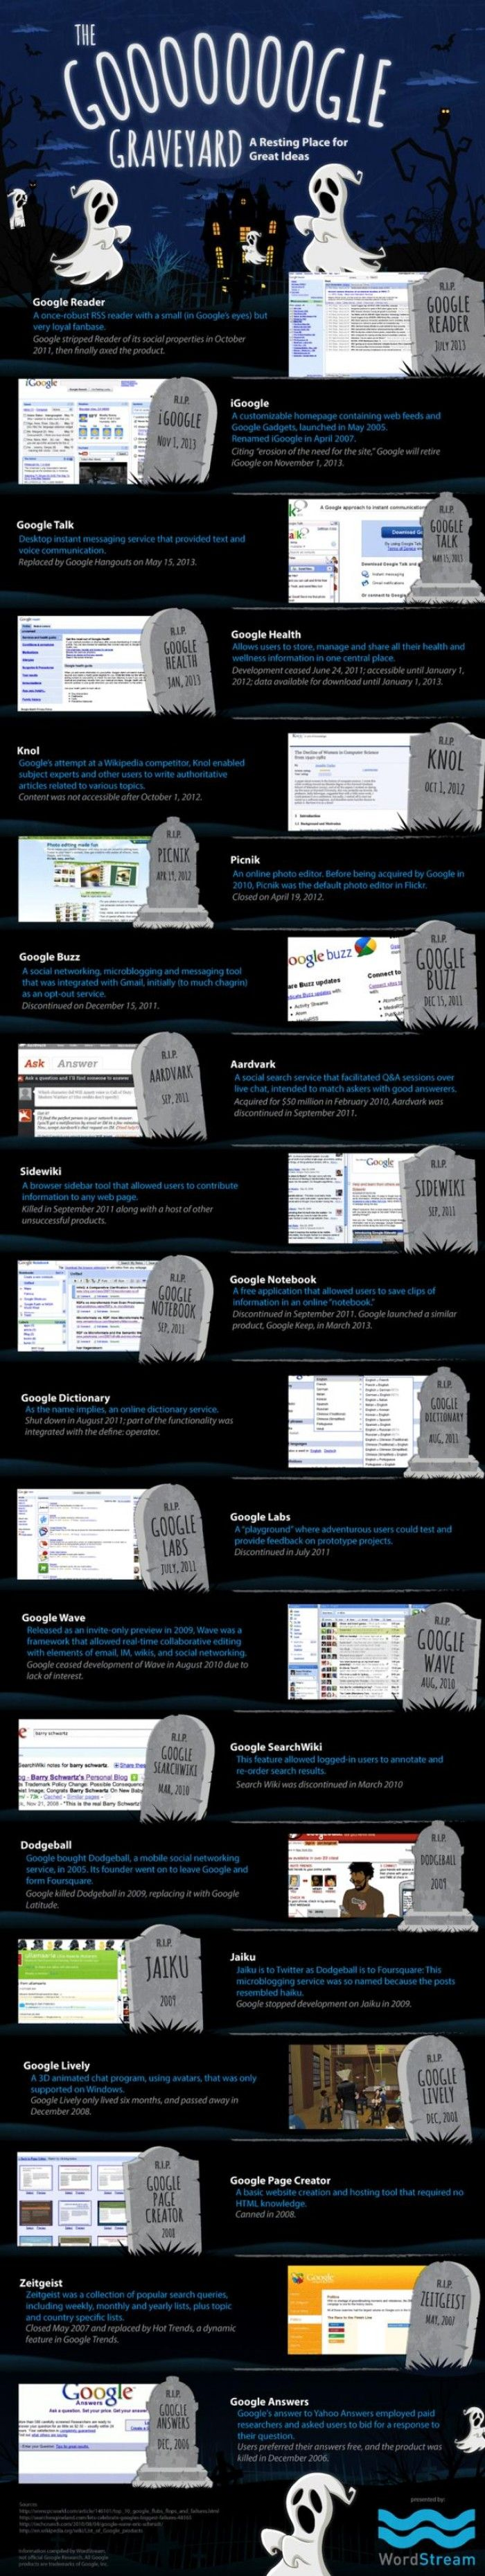 The Google Graveyard !